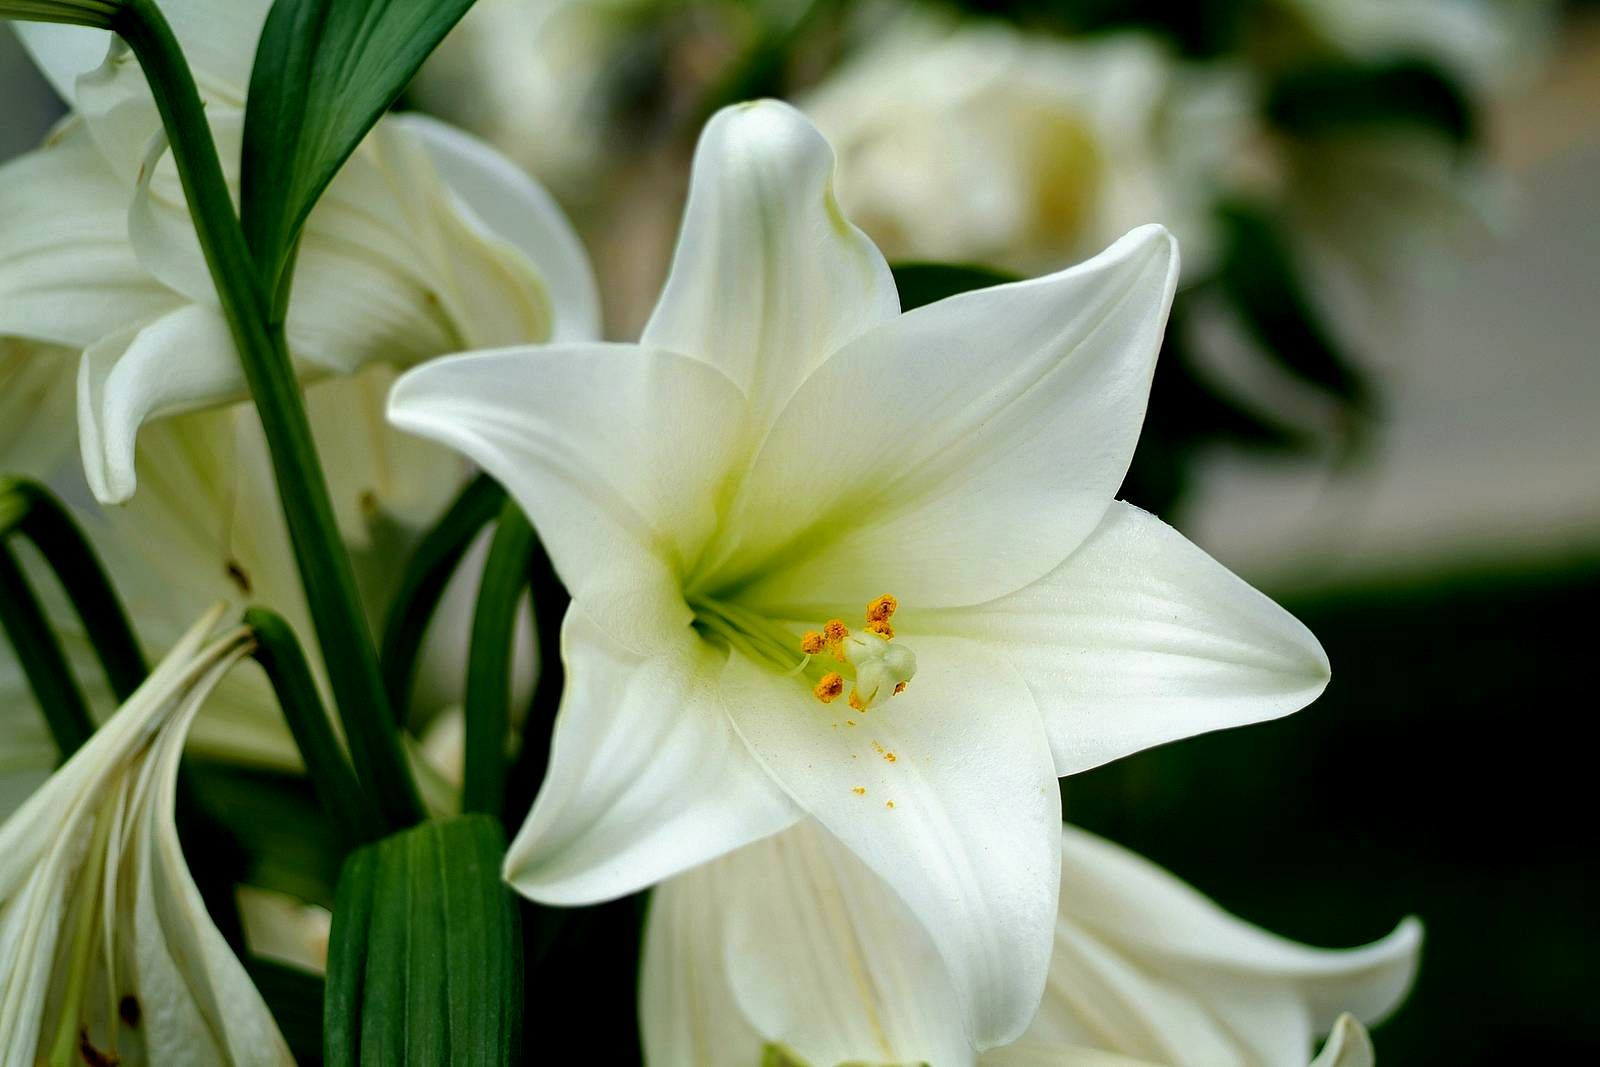 White lily flowers pictures click visit link for detail white lily flowers pictures click visit link for detail izmirmasajfo